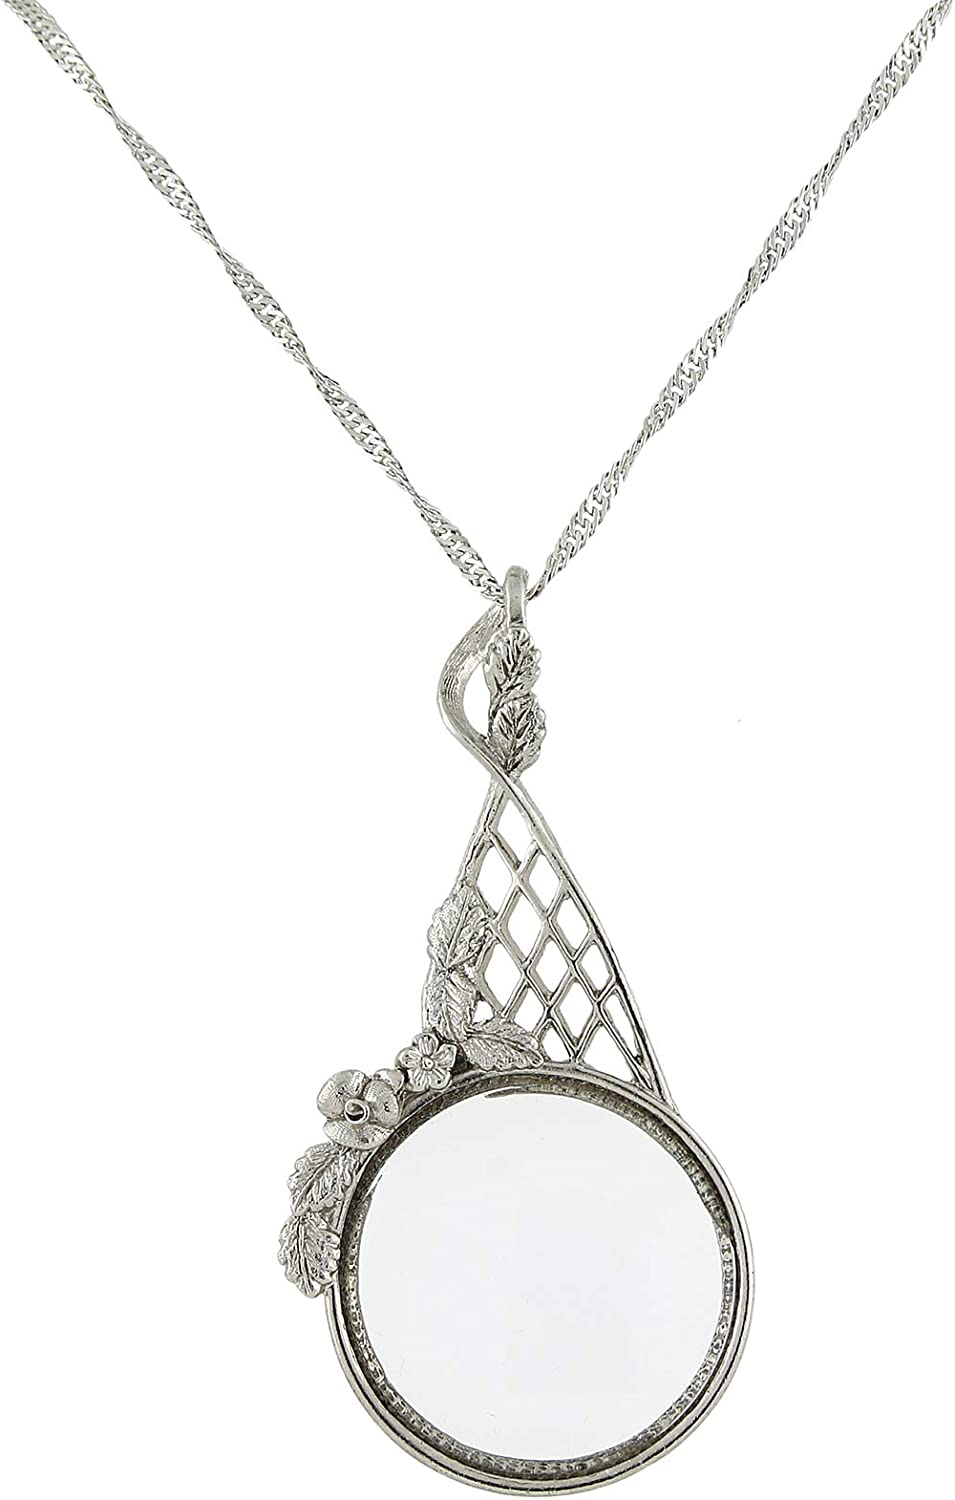 1928 Jewelry Silver-Tone Filigree Magnifying Glass Necklace